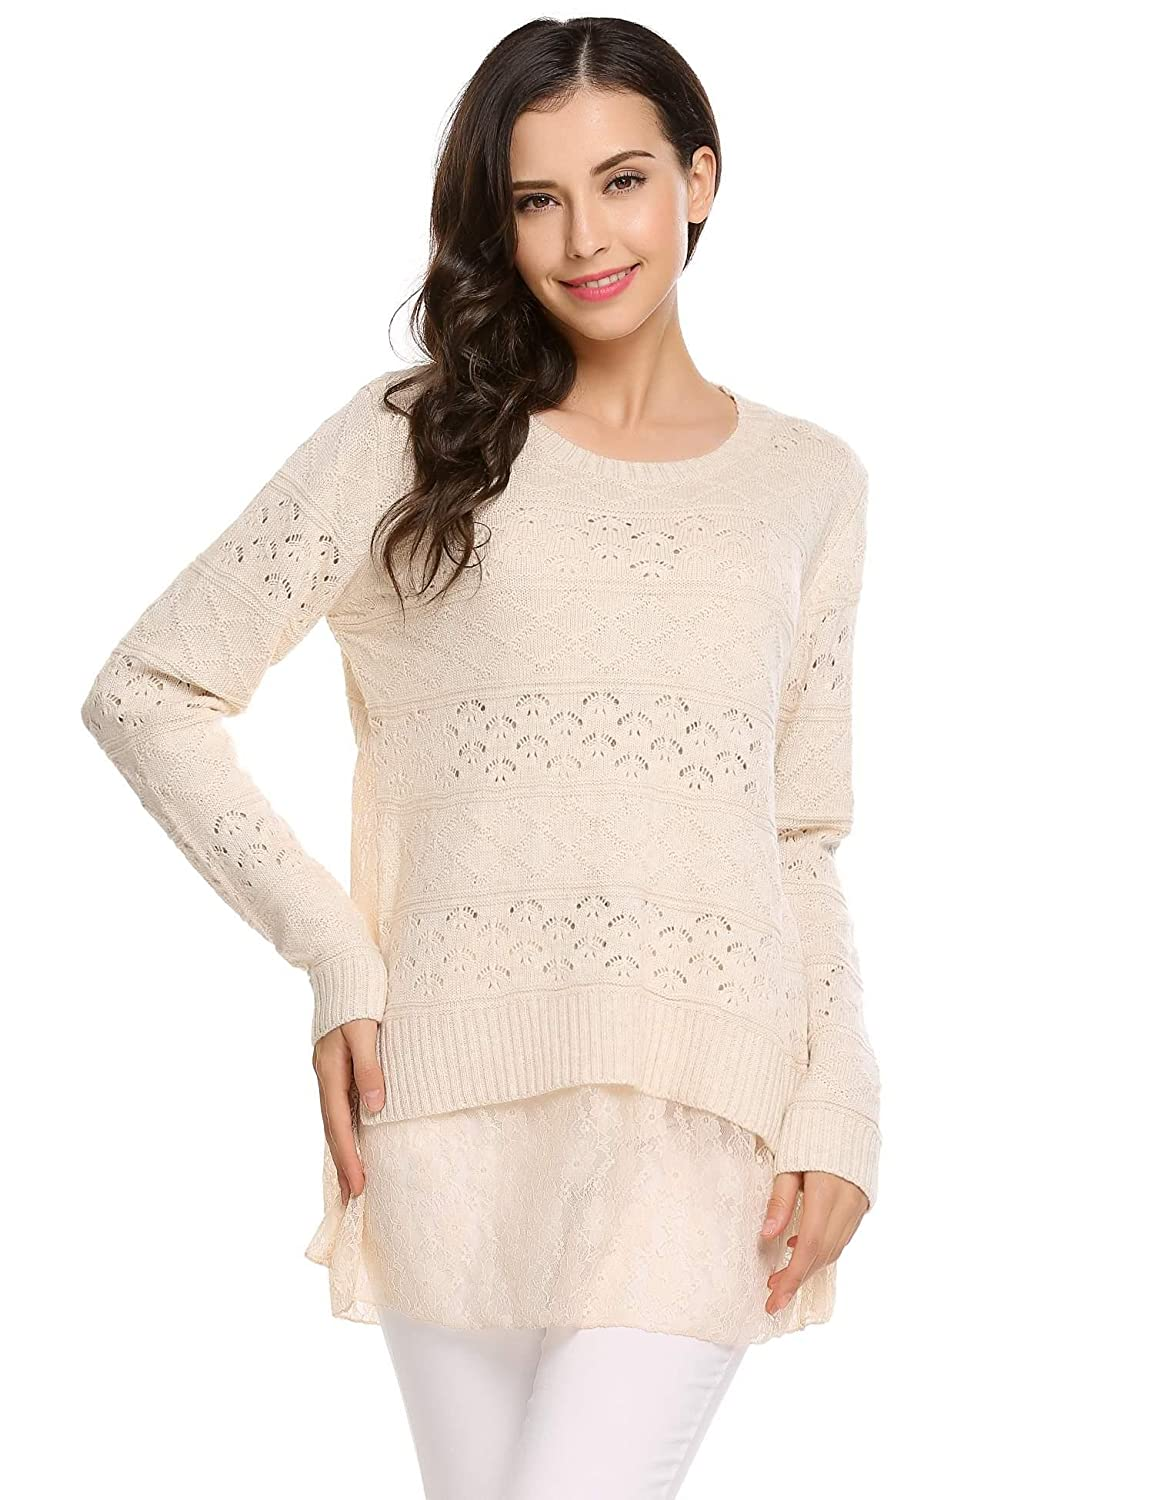 Zeagoo Women s Loose Fit Lace up V Neck Long Sleeve Knit Sweater Tops at  Amazon Women s Clothing store  88d874d75